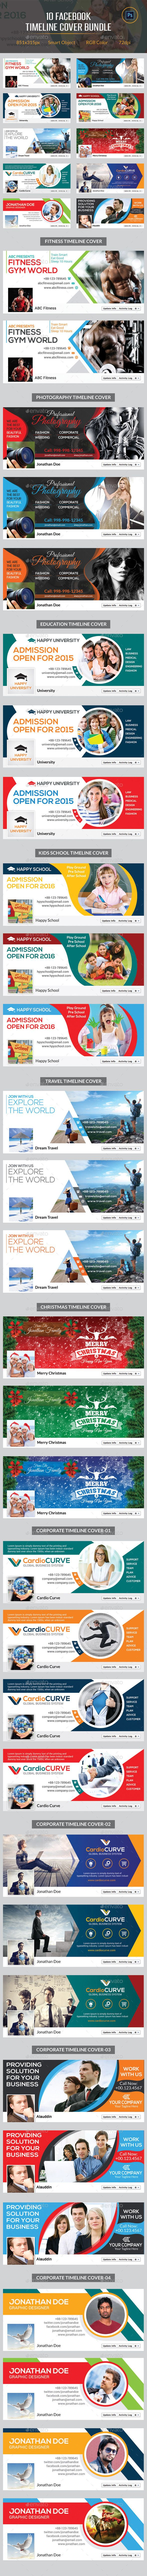 10 Facebook Timeline Cover Bundle Template PSD #design Download: http://graphicriver.net/item/10-facebook-timeline-cover-bundle/11637262?ref=ksioks